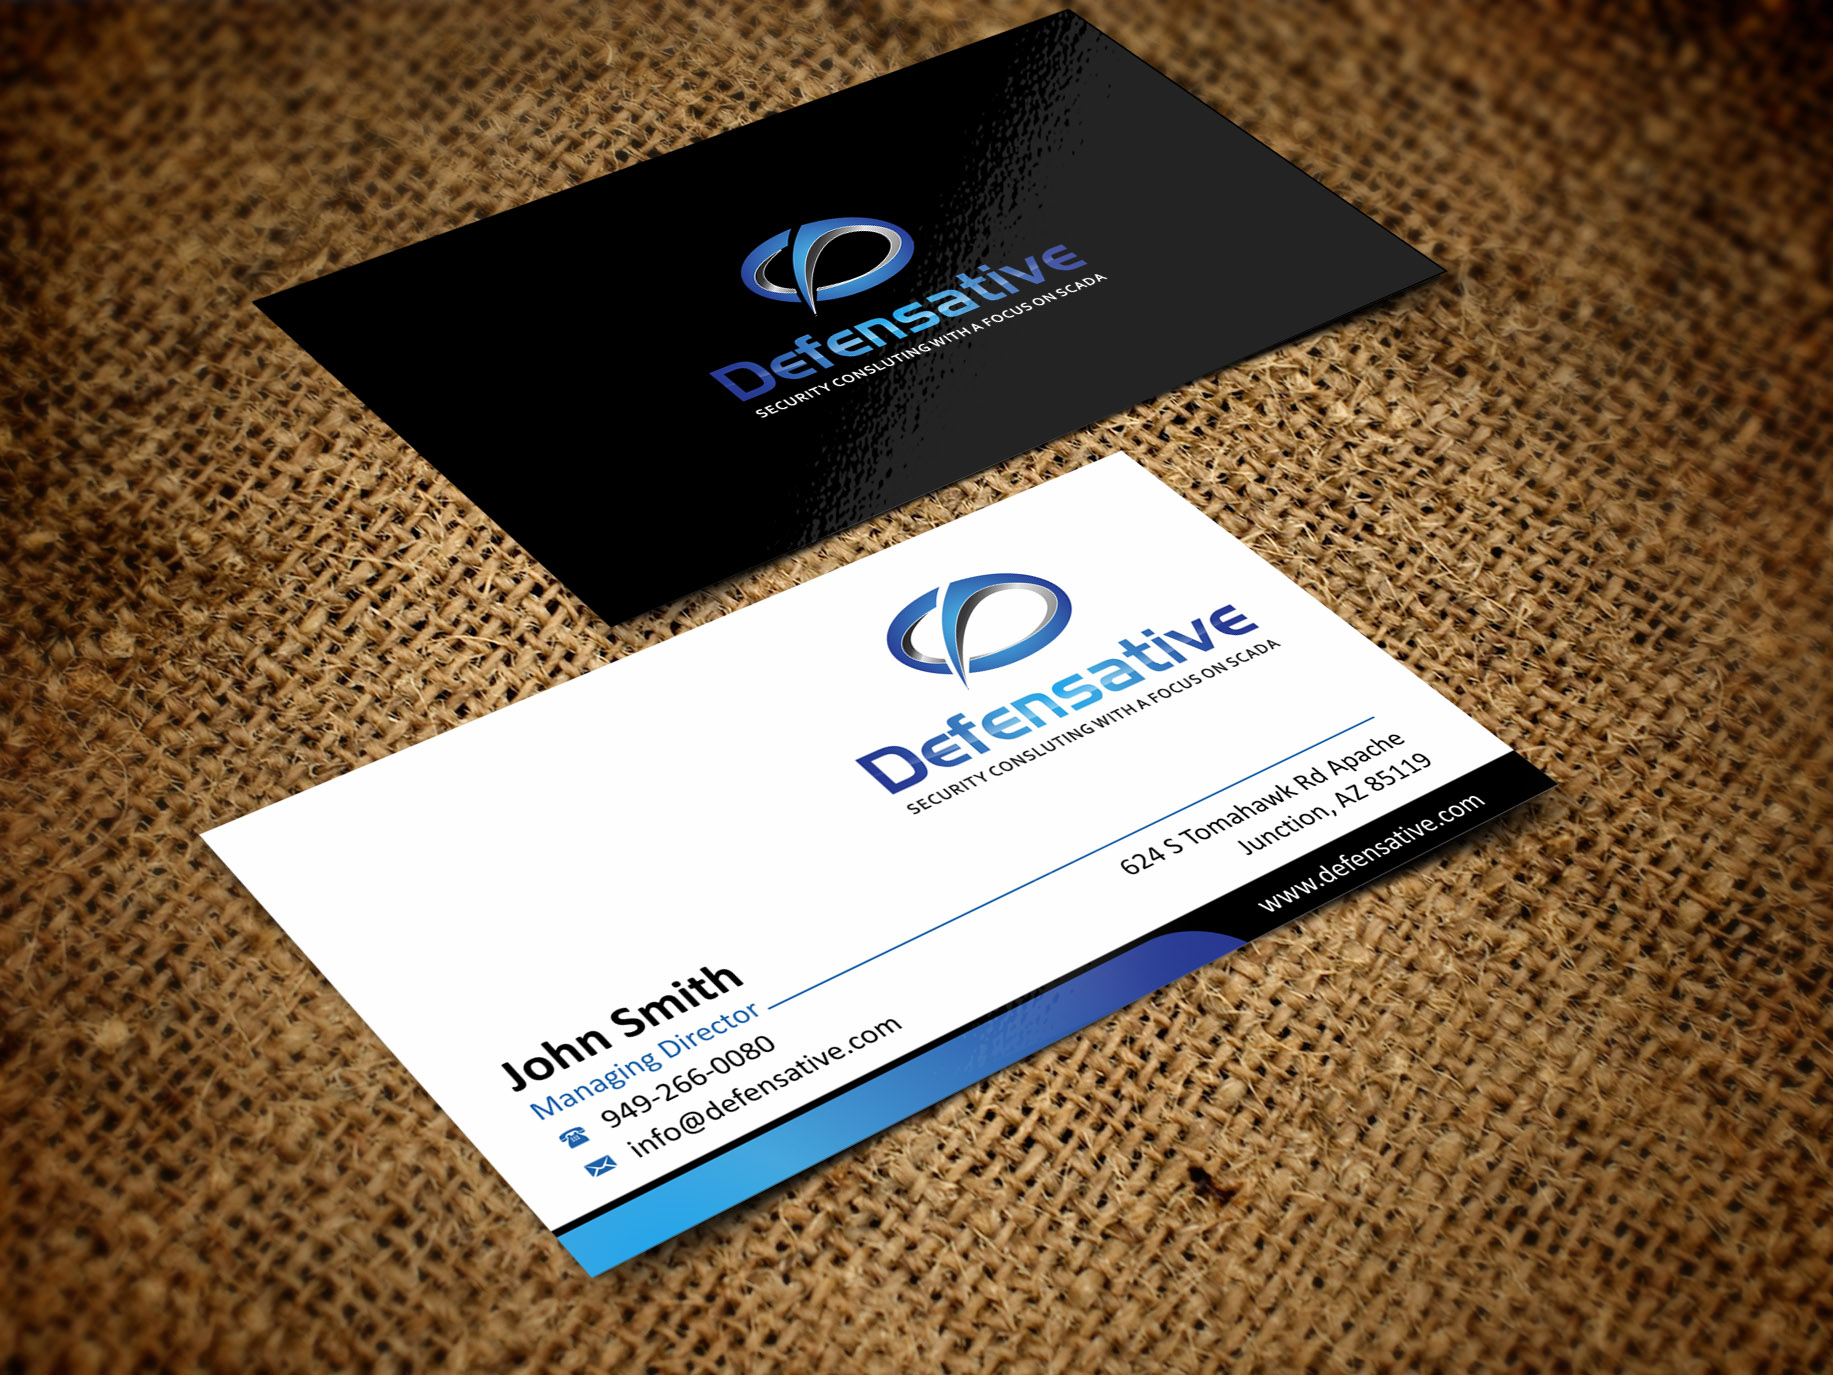 Custom Design by Muhammad Aslam - Entry No. 25 in the Custom Design Contest Custom Design Business Cards+Logo+Stationary for Defensative.